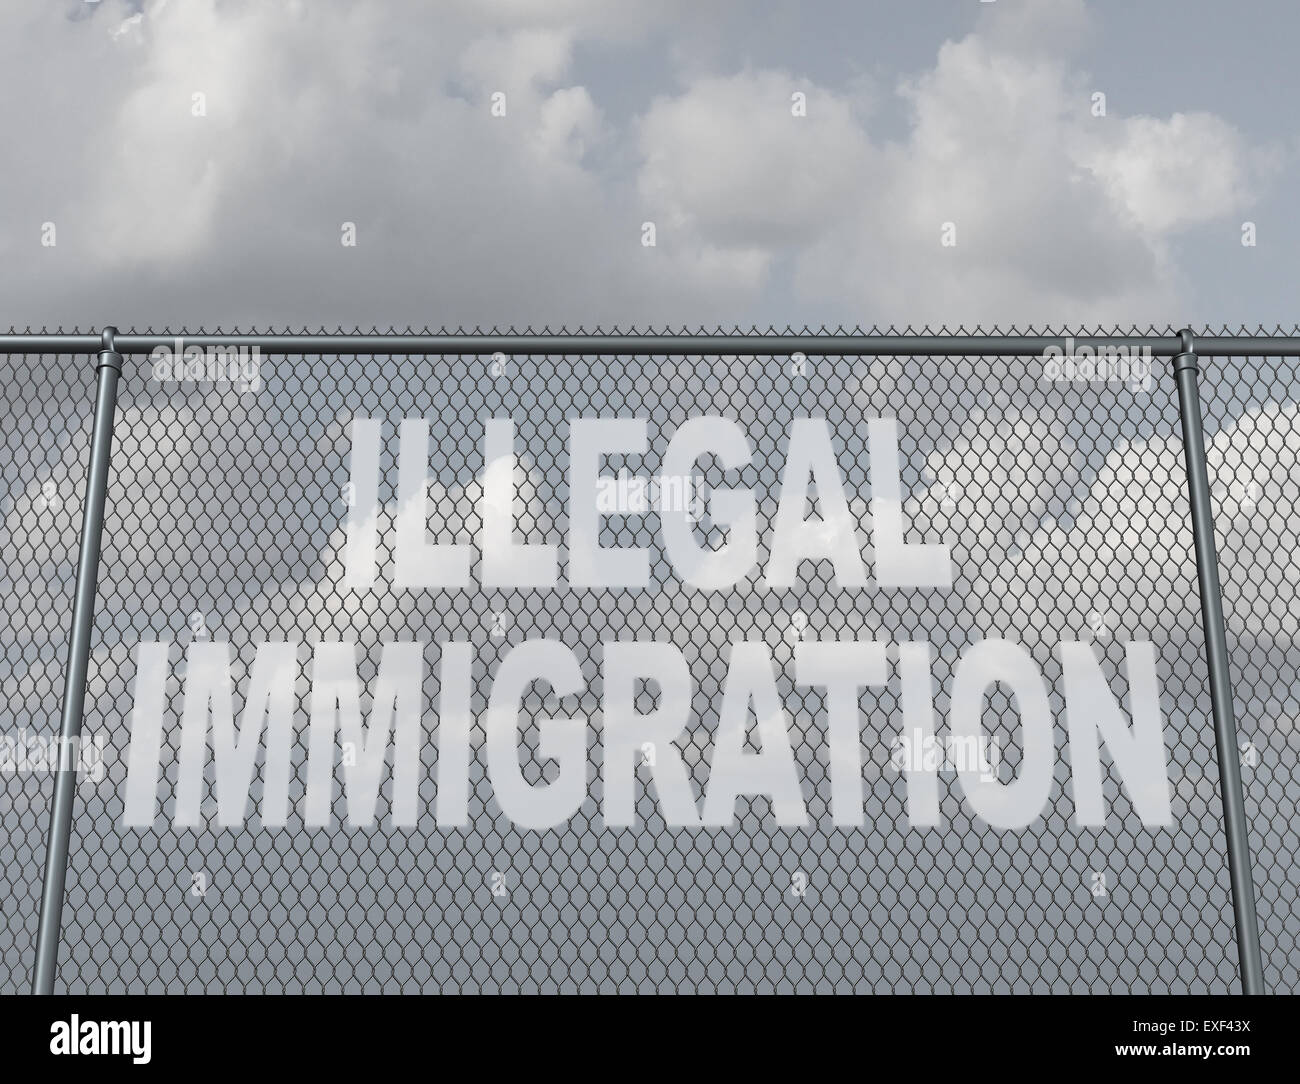 Illegal immigration concept as a chain fence with a hole shaped as text that represents people illegaly crossing - Stock Image